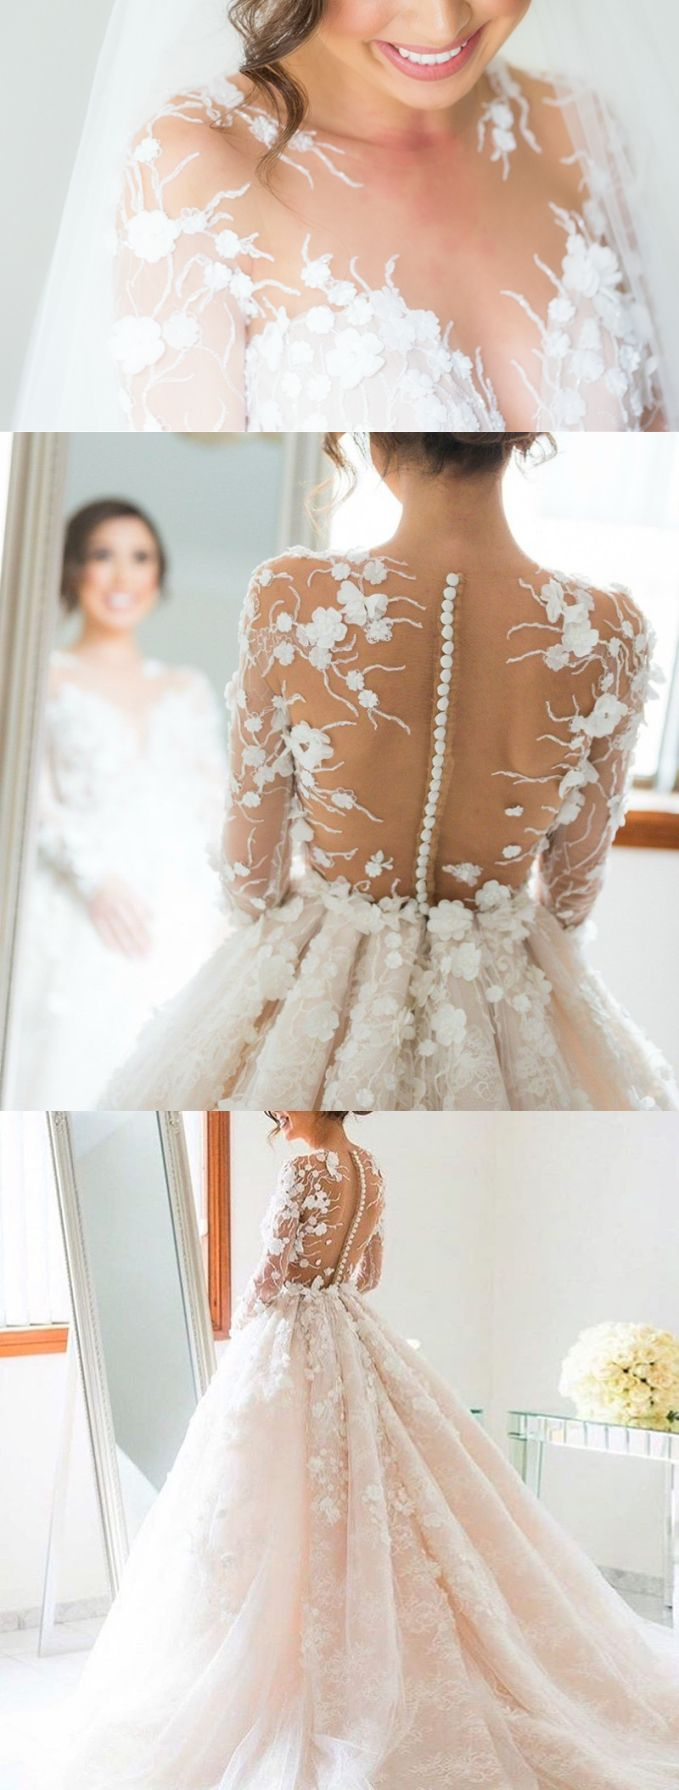 Ball Gown Wedding Dresses,Long Illusion Back Wedding Dresses,Lace Wedding Dresses,Wedding Dresses 2017,Long Sleeves Wedding Dresses